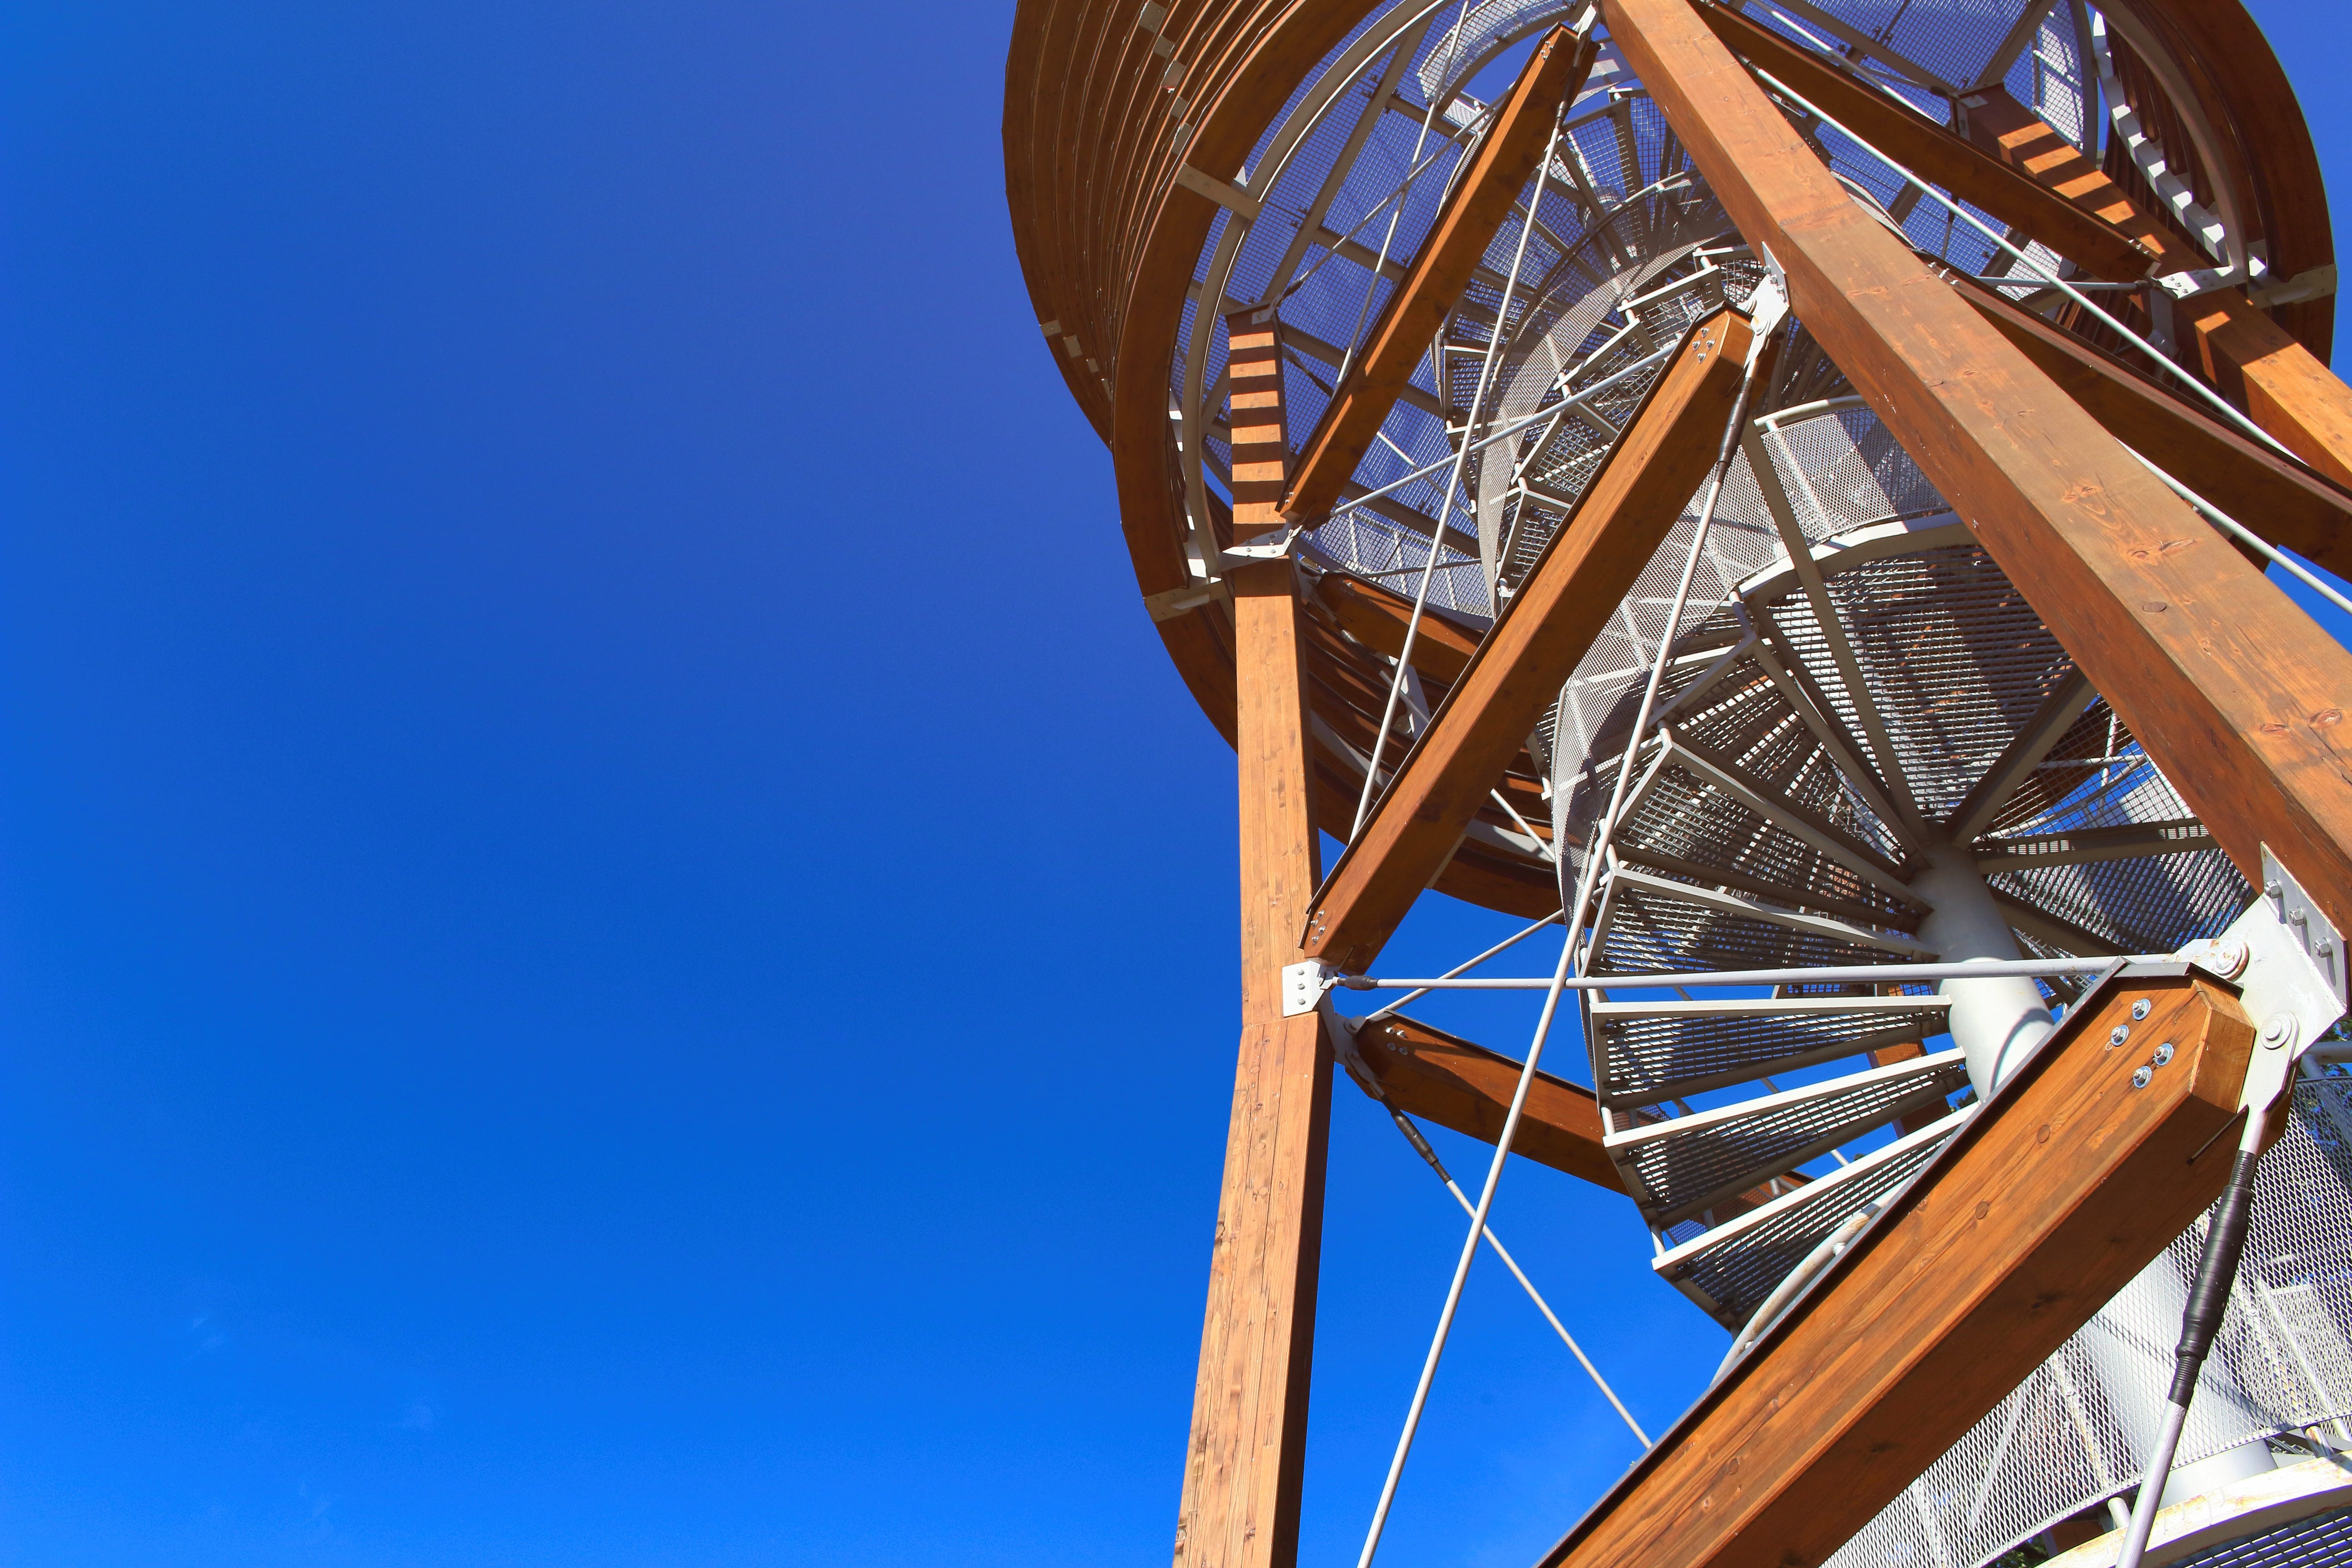 Free stock photo of blue sky, building, Lookout tower, spiral staircase